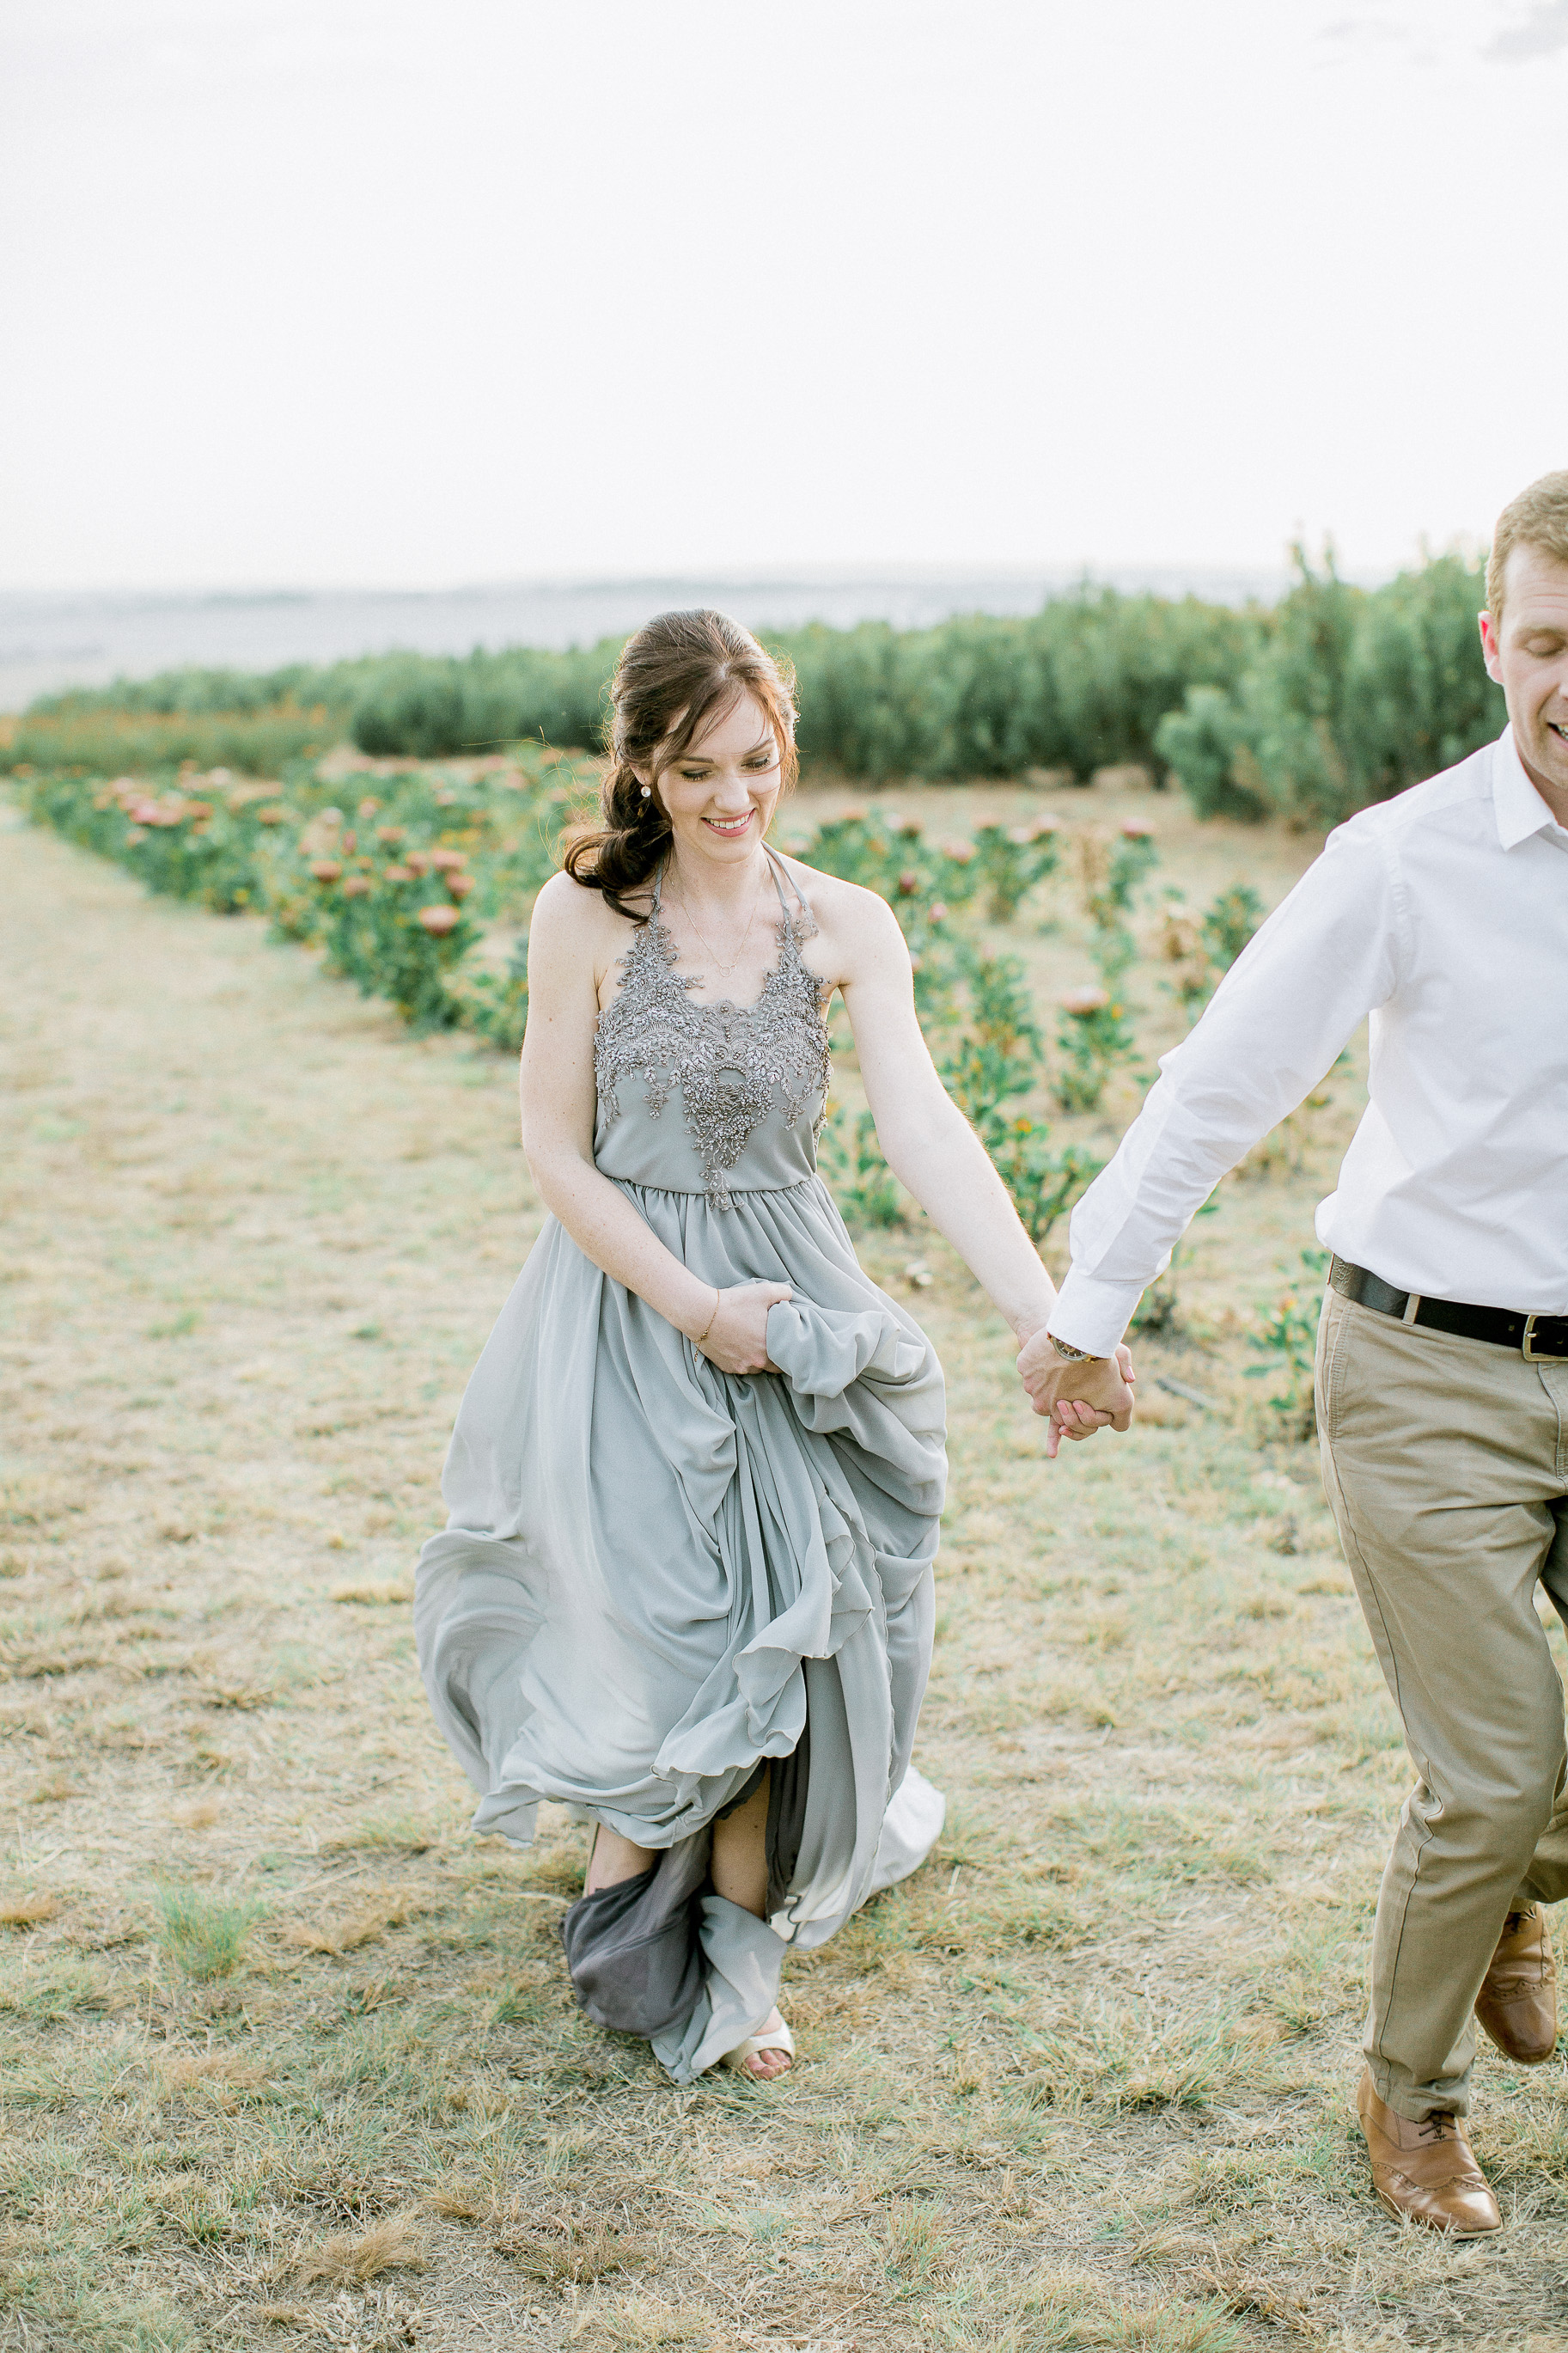 South africa wedding photographer clareece smit photography42.jpg